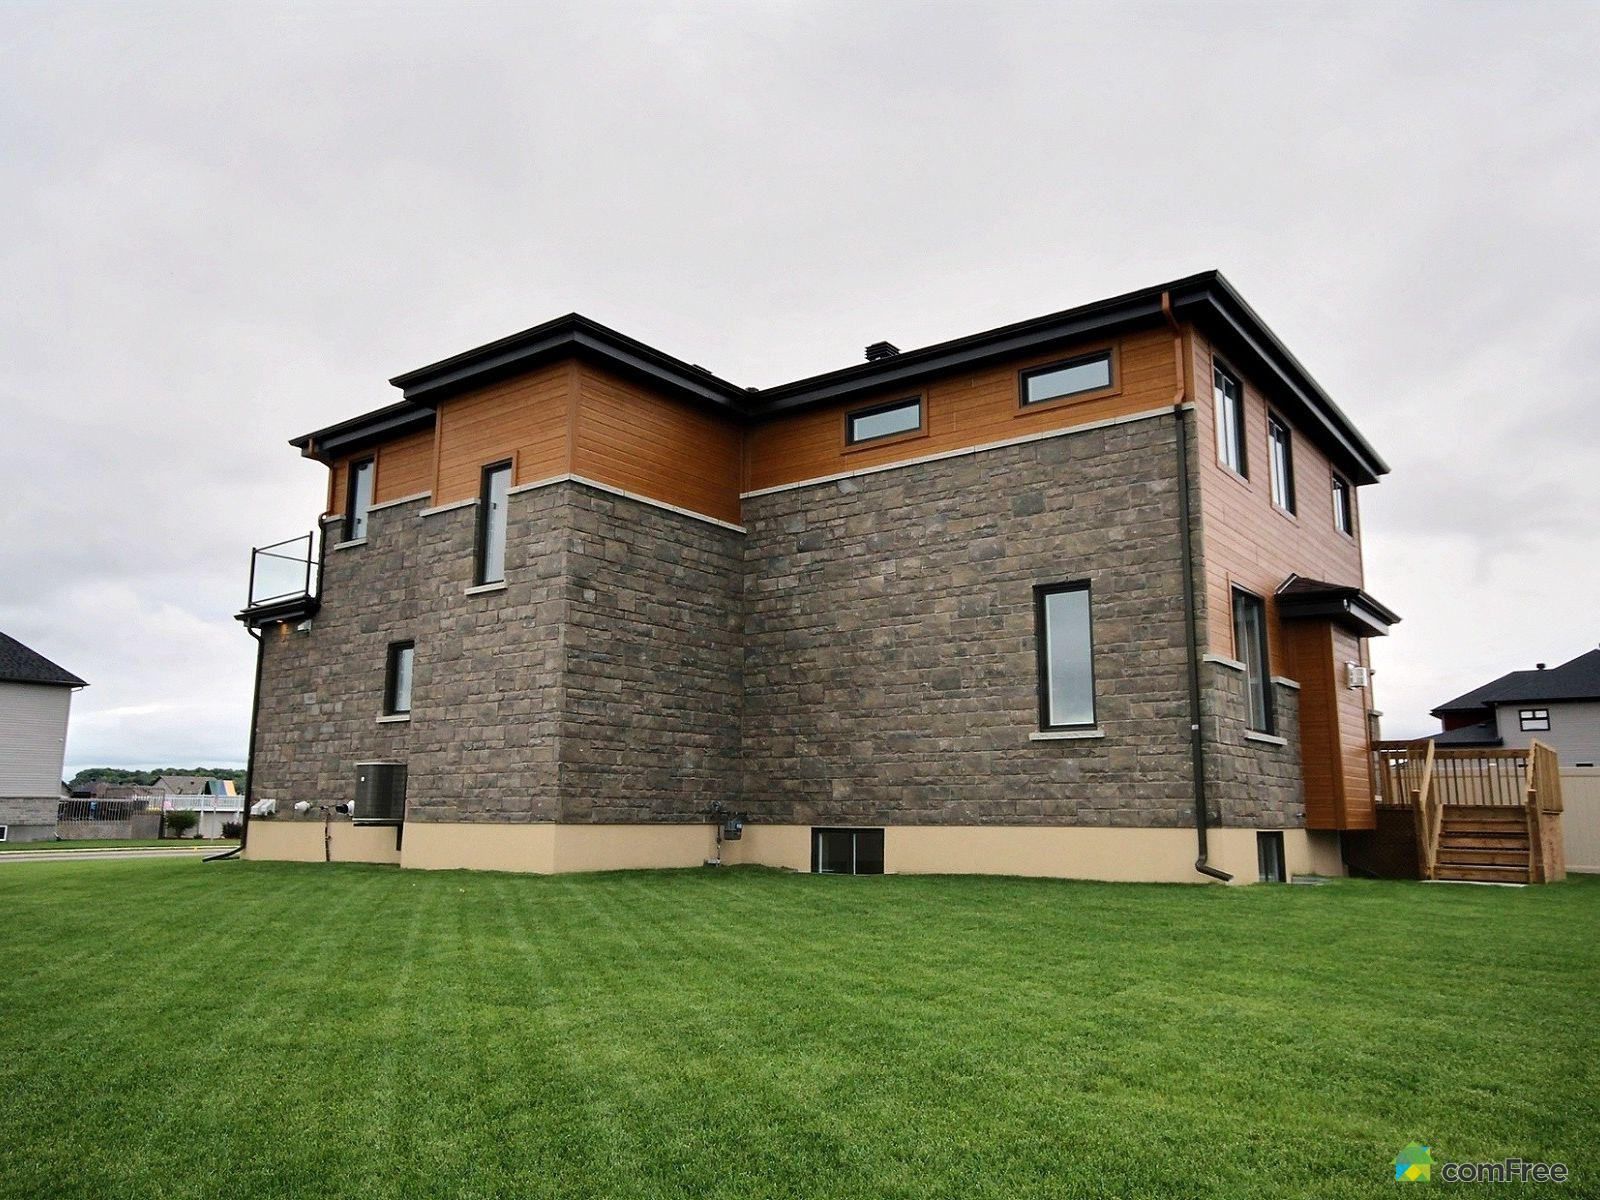 side-view-new-home-for-sale-rockland-ontario-1600-6589189.jpg